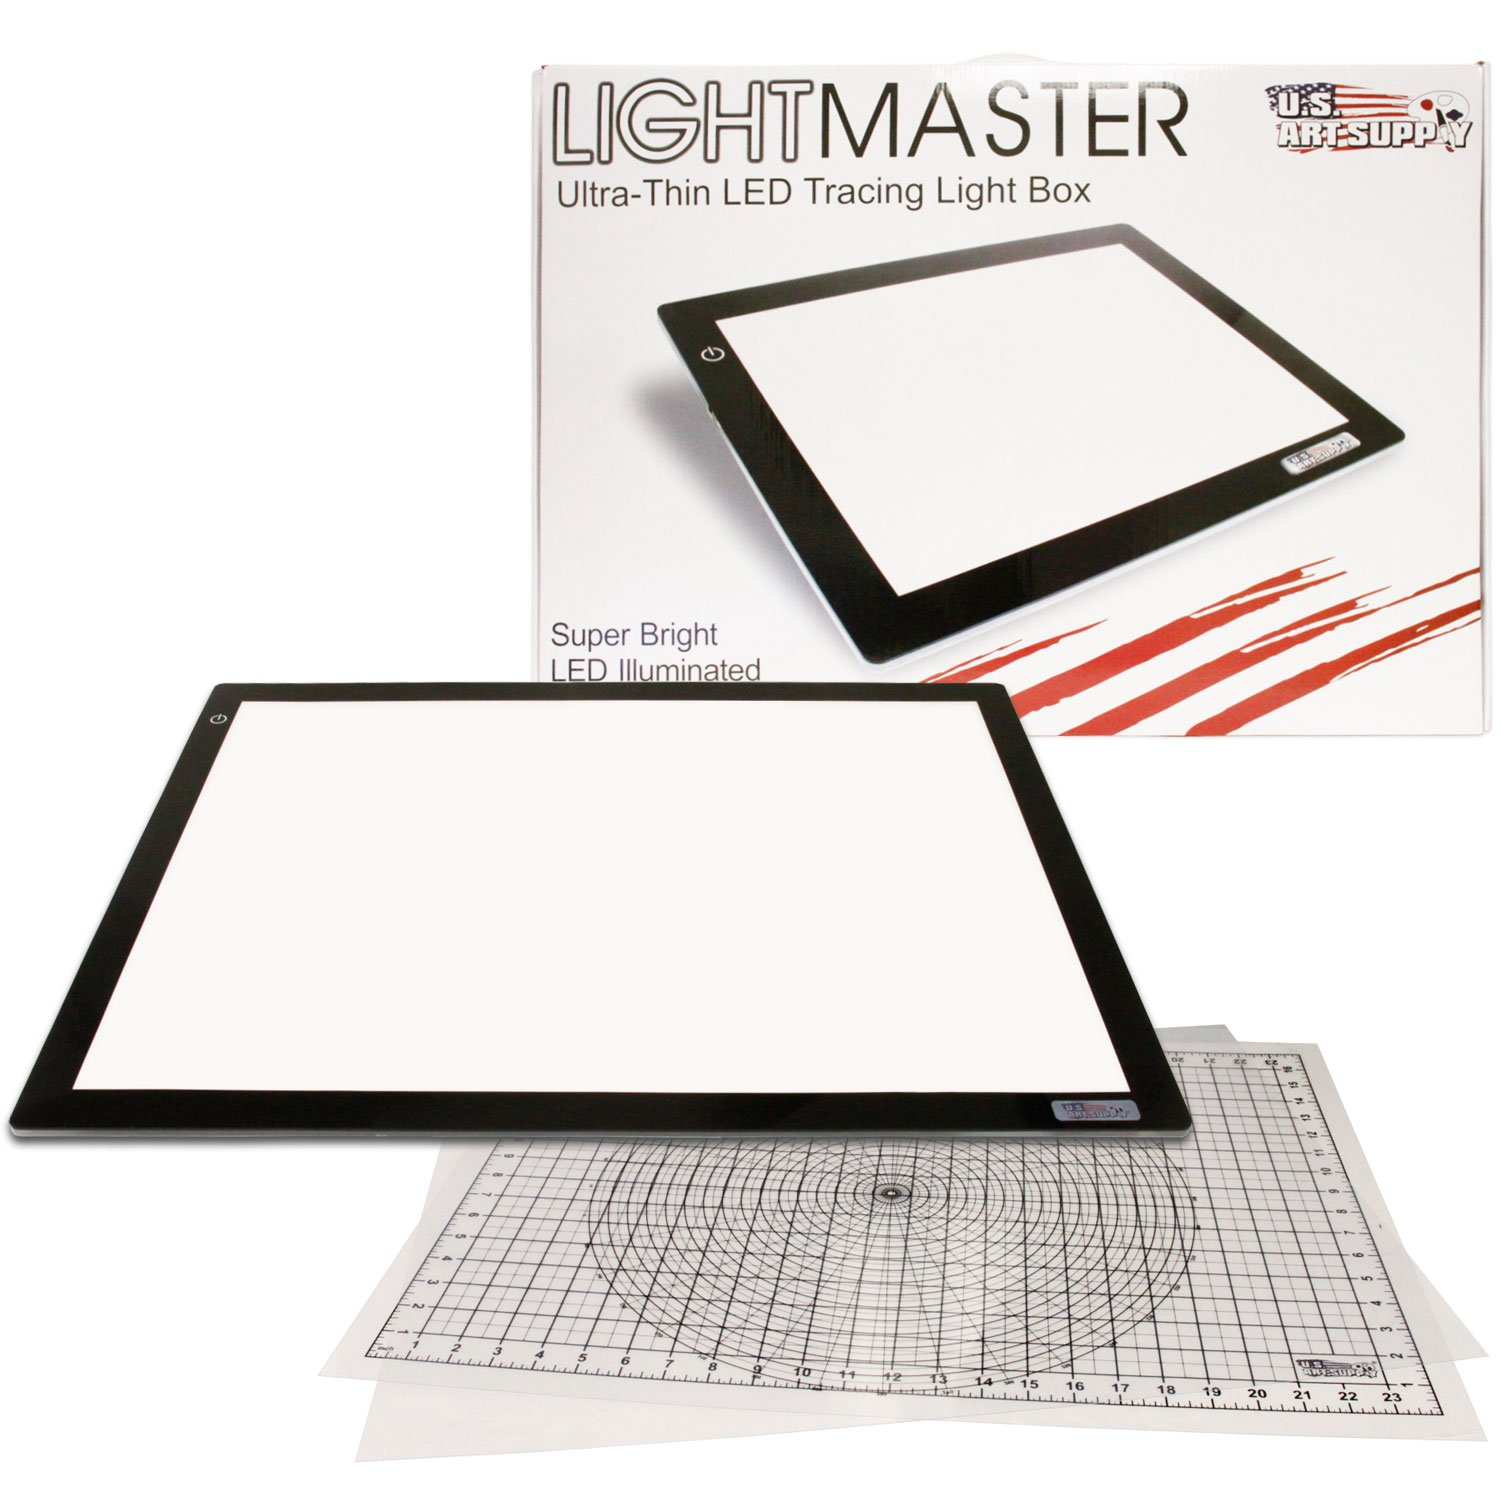 US ART SUPPLY Lightmaster Jumbo 32.5 Diagonal Extra Large(A2) 17x24 LED Lightbox Board- 12-Volt Super-Bright Ultra-Thin 3/8 Profile Light Box Pad with 110V AC Power Adapter & Dimmable LED Lamps. Now Includes for FREE: 1 Measuring Overlay Grid & 1 C